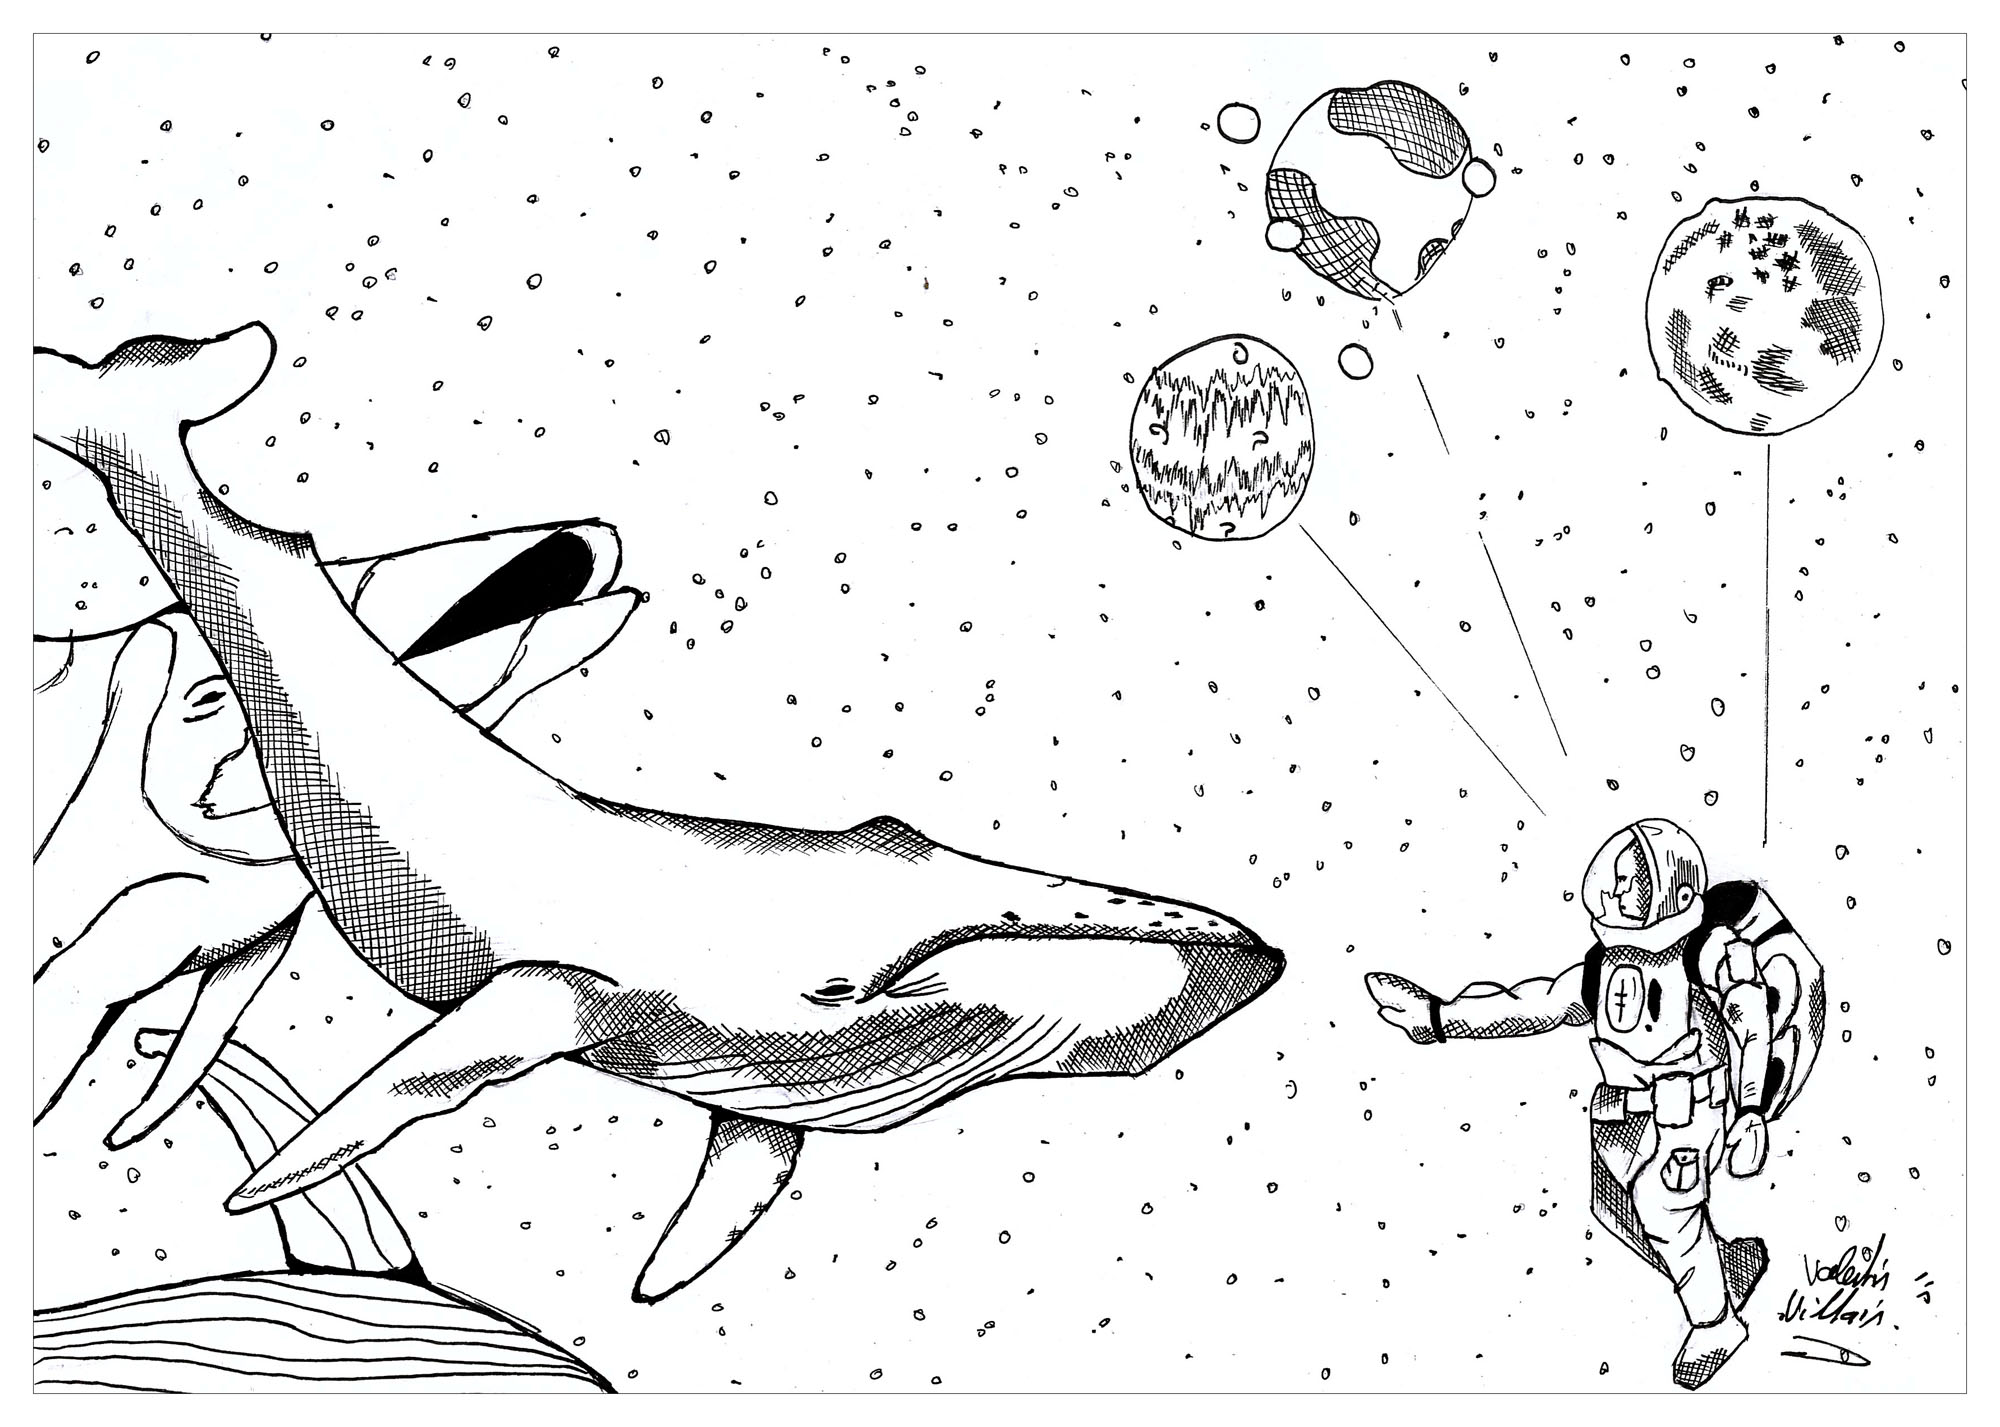 Coloring page of the aquatic cosmos